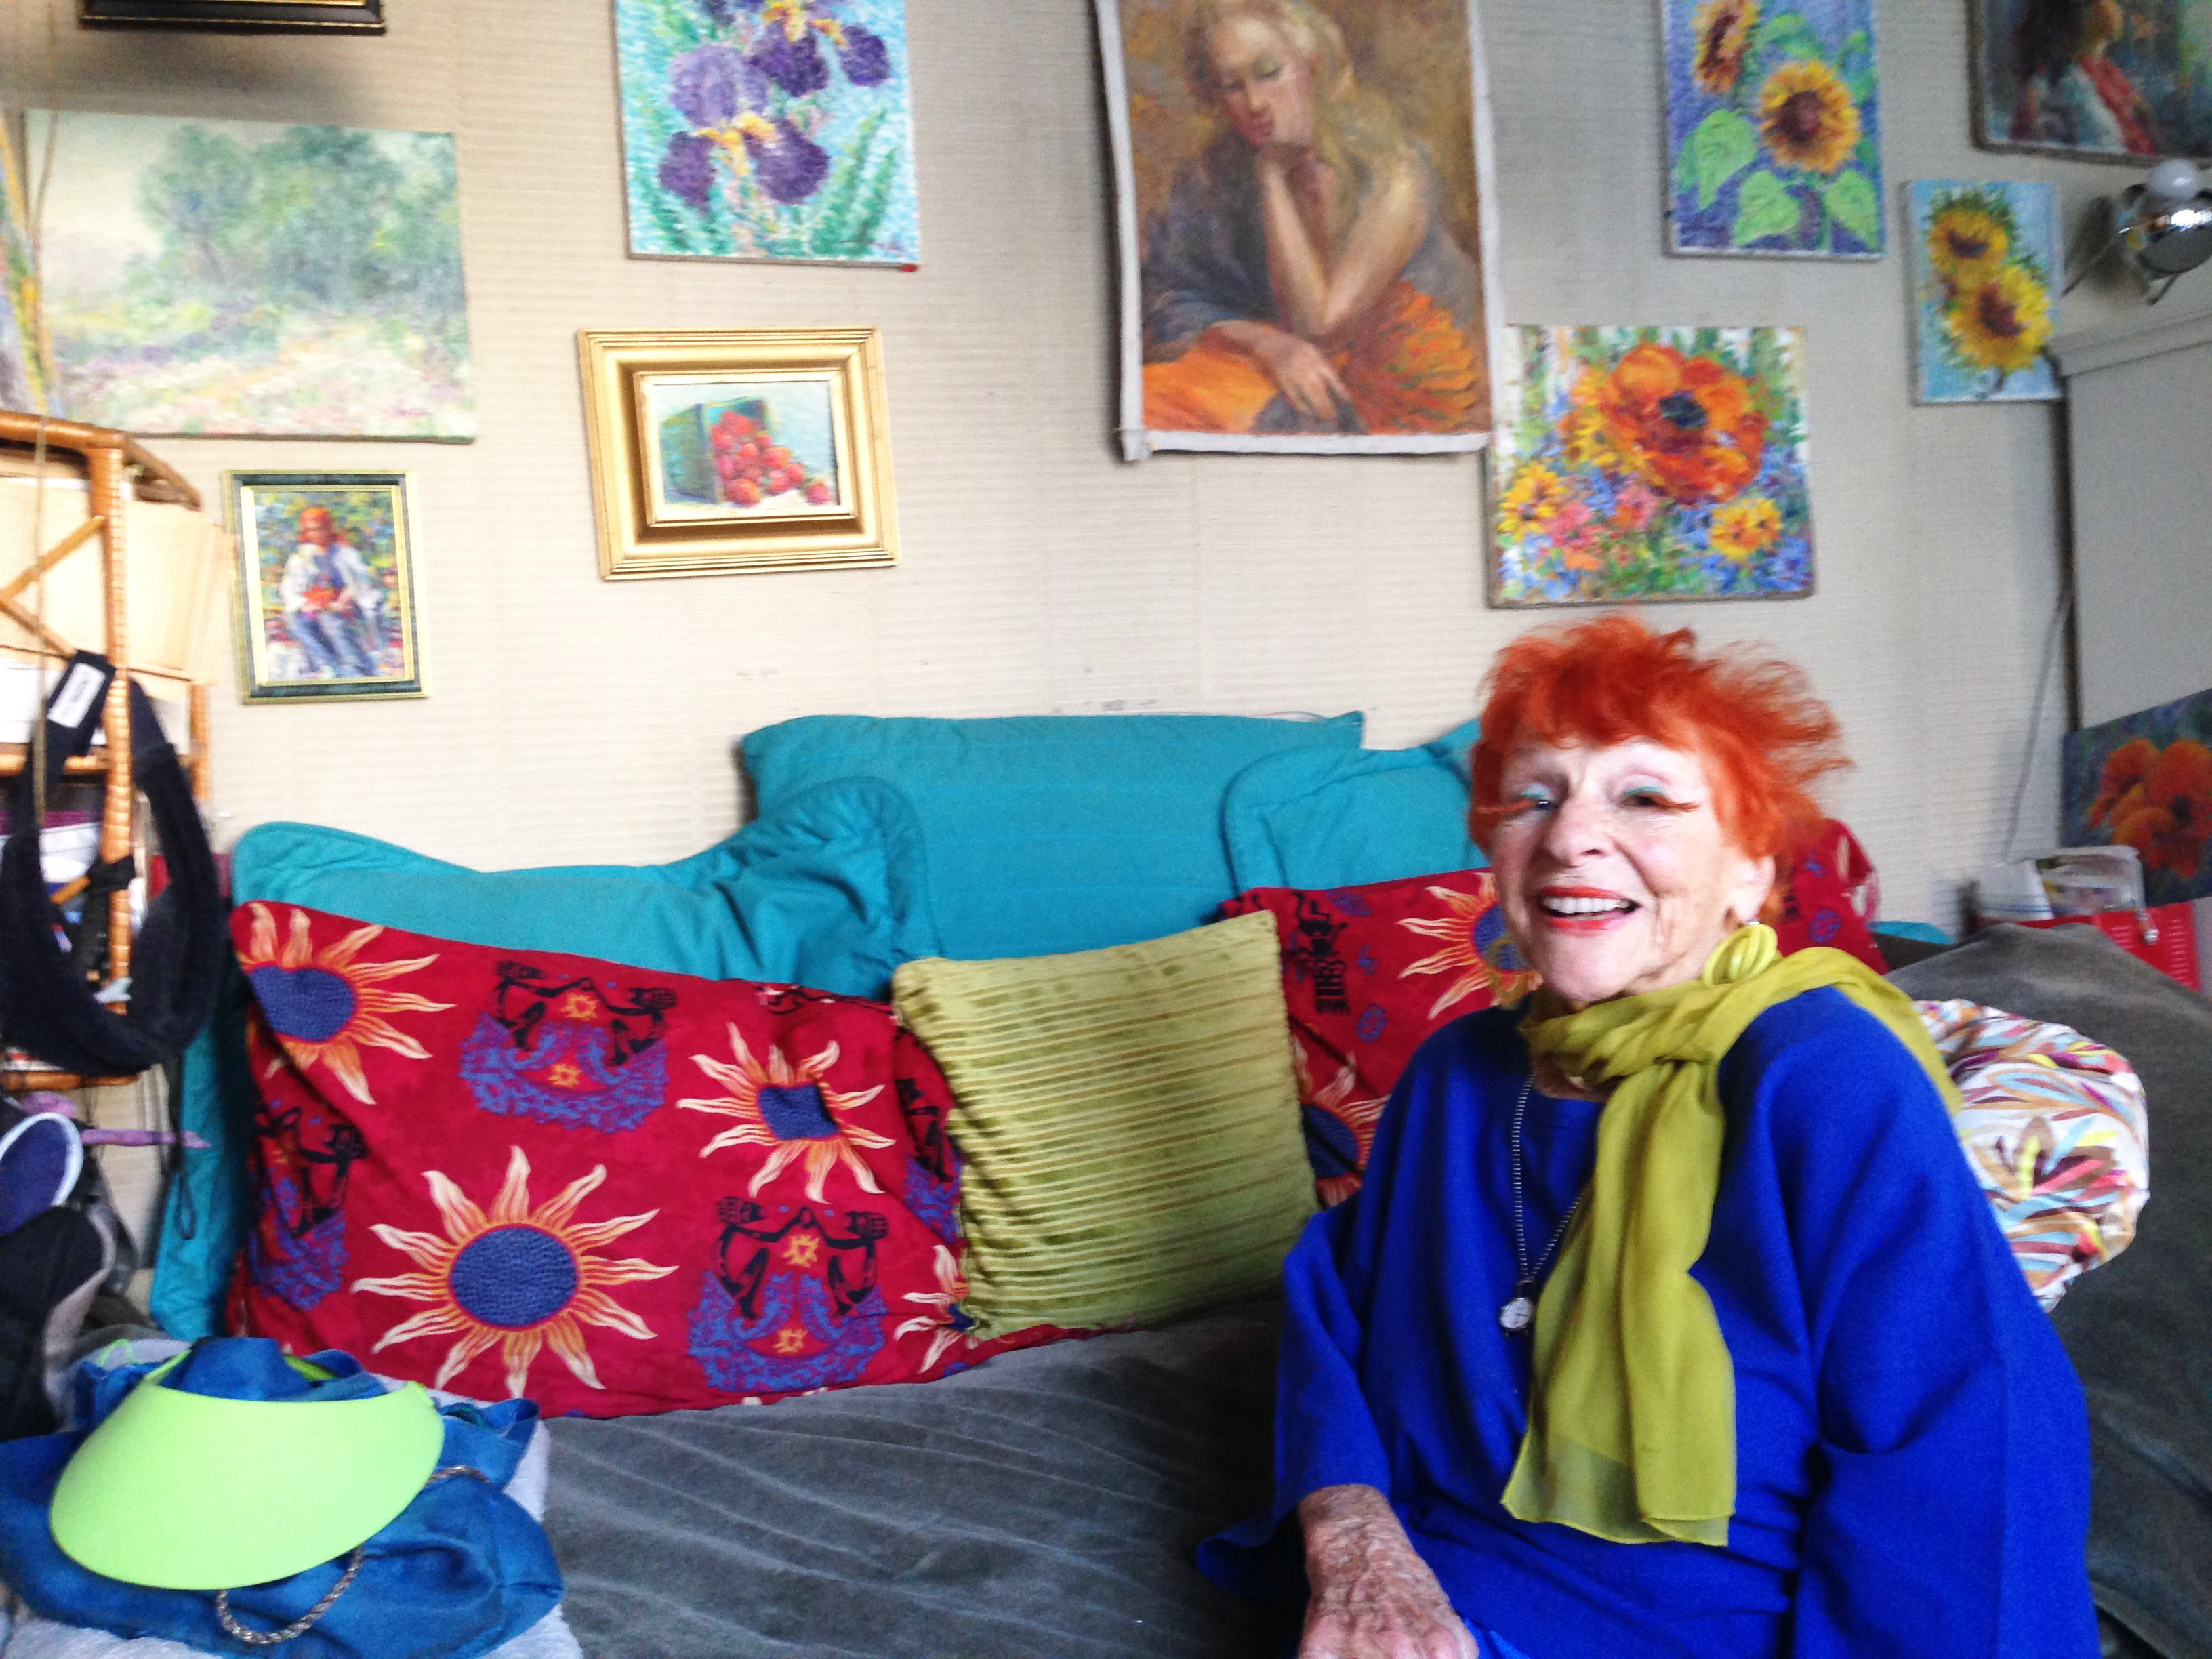 95-year-old Artist Ilona Royce-Smithkin, October 21, 2015